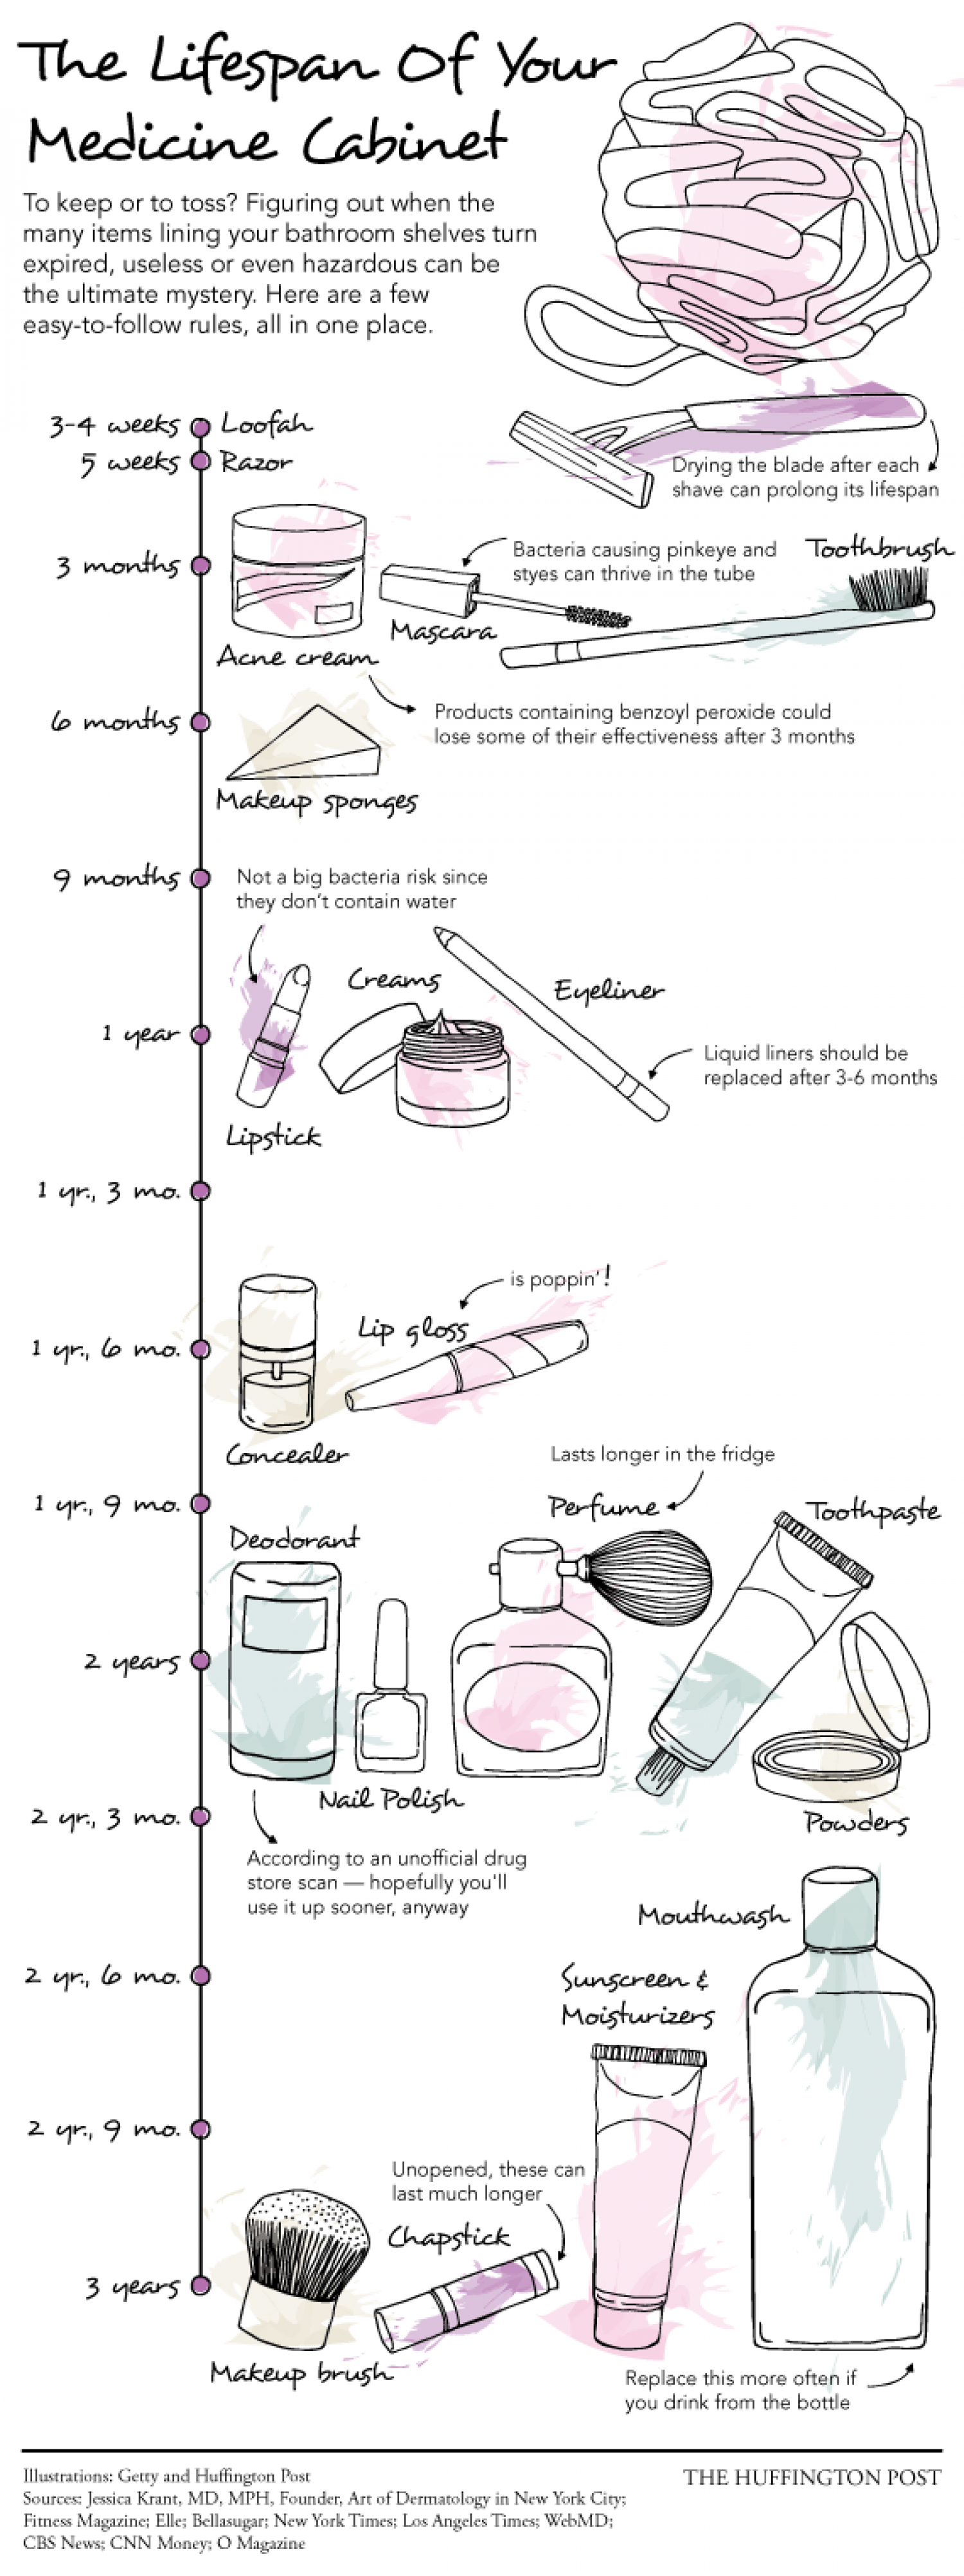 The Lifespan Of Your Medicine Cabinet Infographic